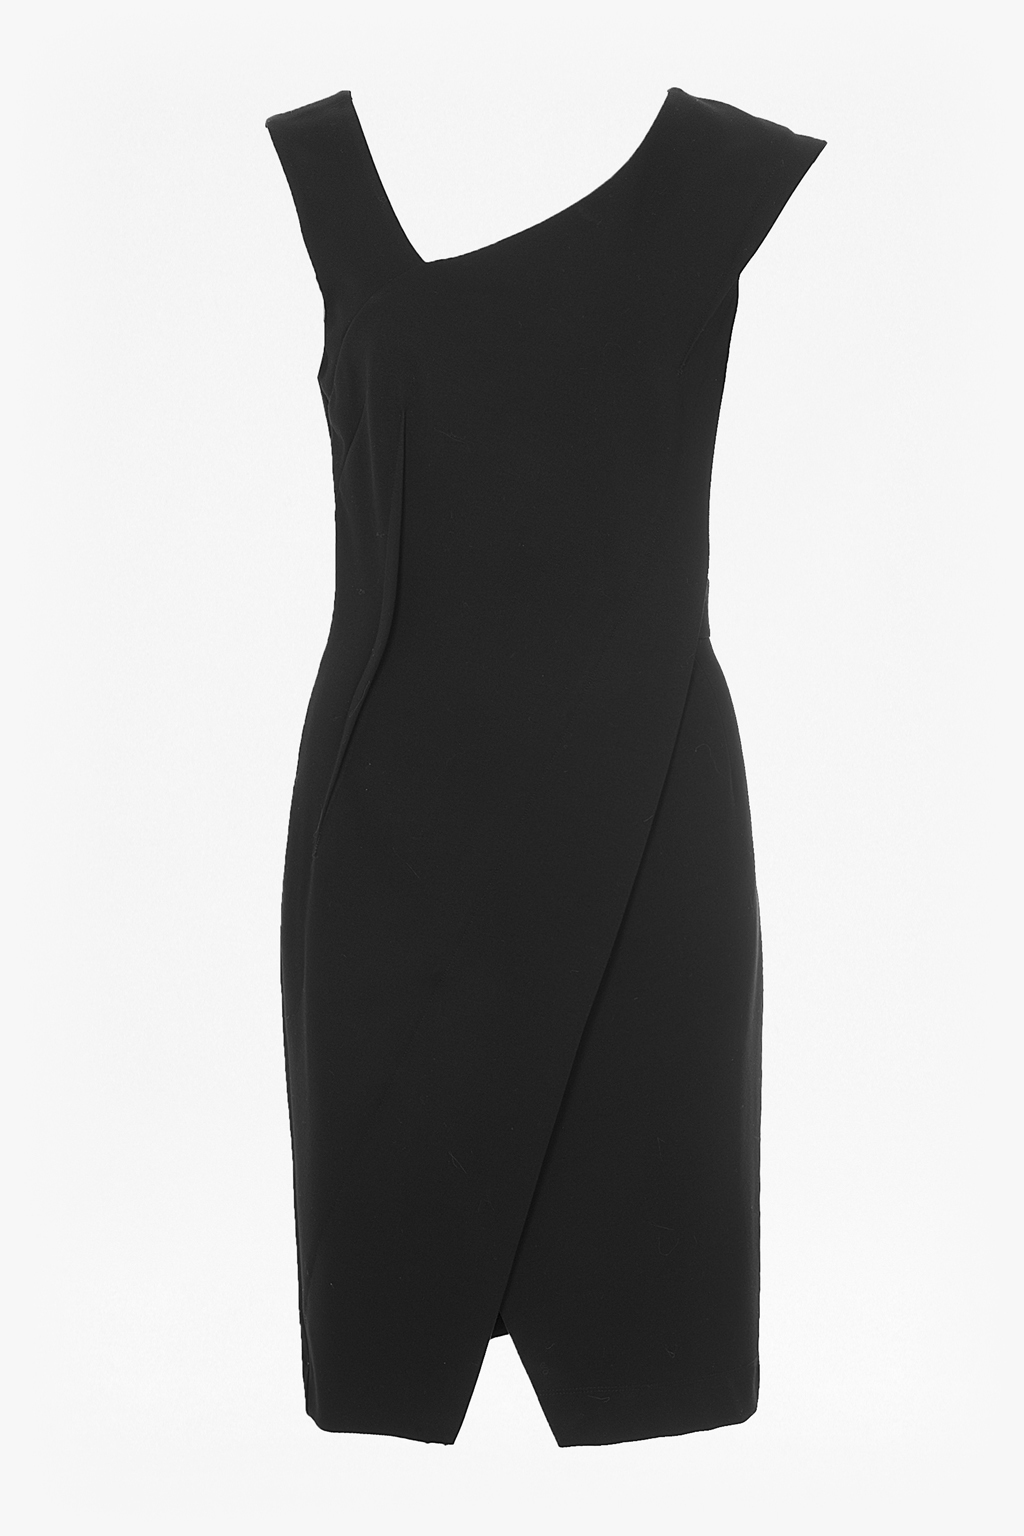 Lula Stretch Asymmetric Dress Acid Blonde - fit: tailored/fitted; pattern: plain; sleeve style: sleeveless; style: asymmetric (top); neckline: asymmetric; predominant colour: black; occasions: evening, occasion; length: just above the knee; fibres: polyester/polyamide - 100%; sleeve length: sleeveless; texture group: crepes; pattern type: fabric; season: a/w 2015